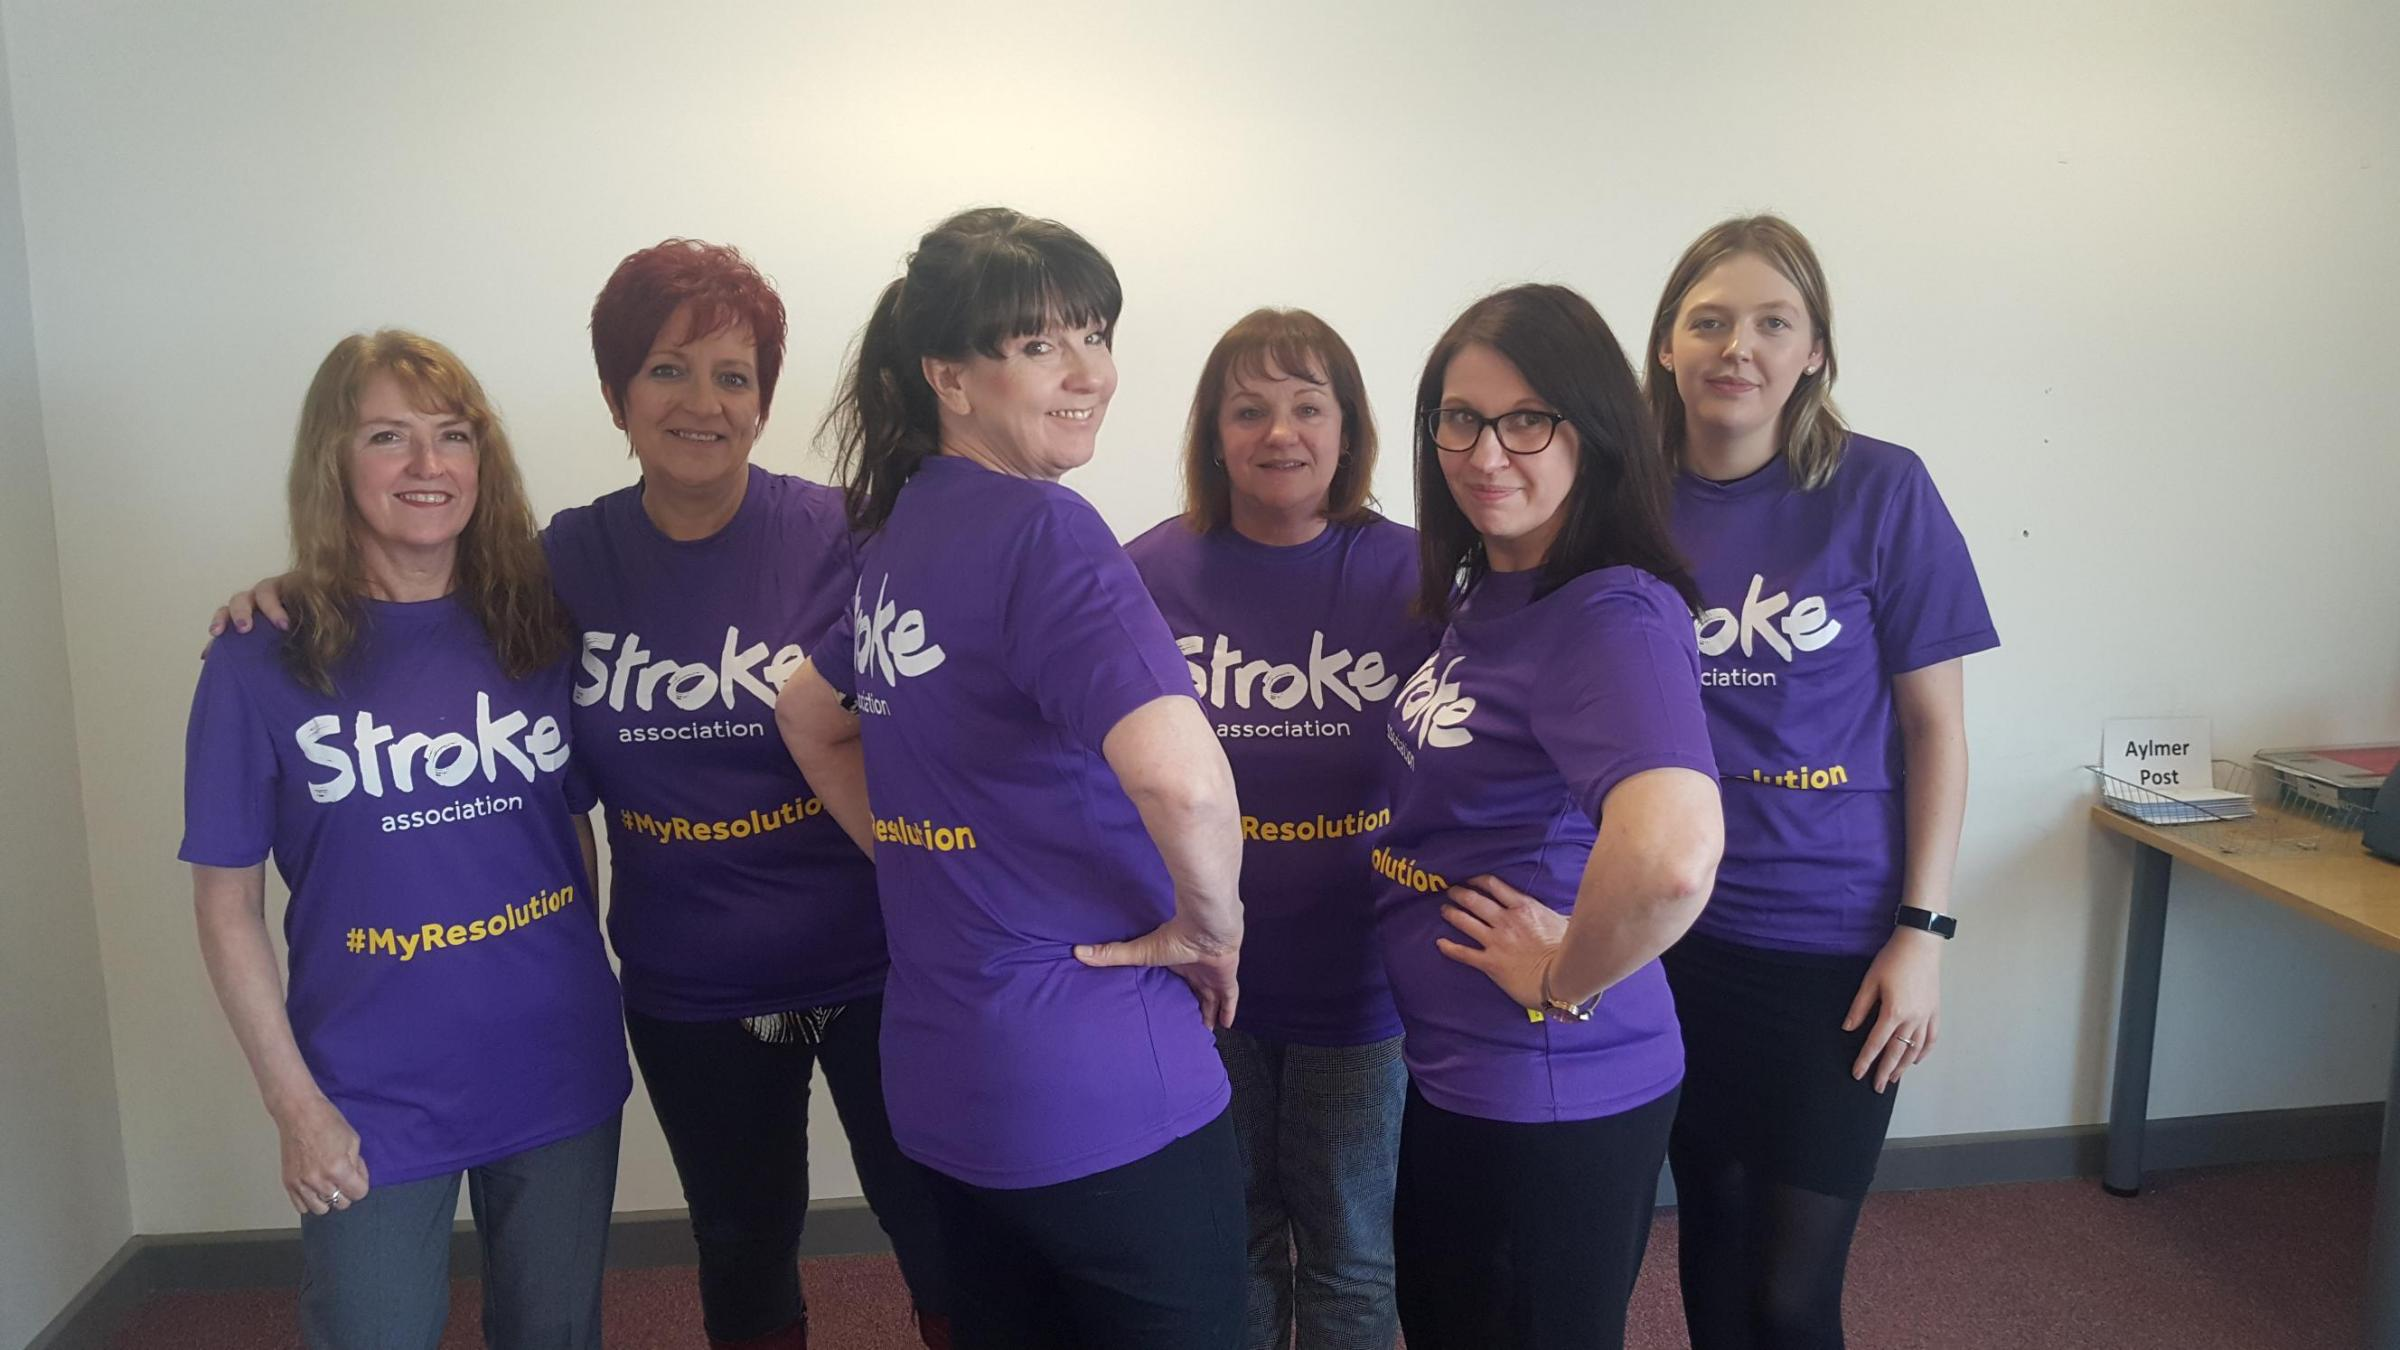 Aylmer Lodge Cookley Partnership staff take on charity challenge.